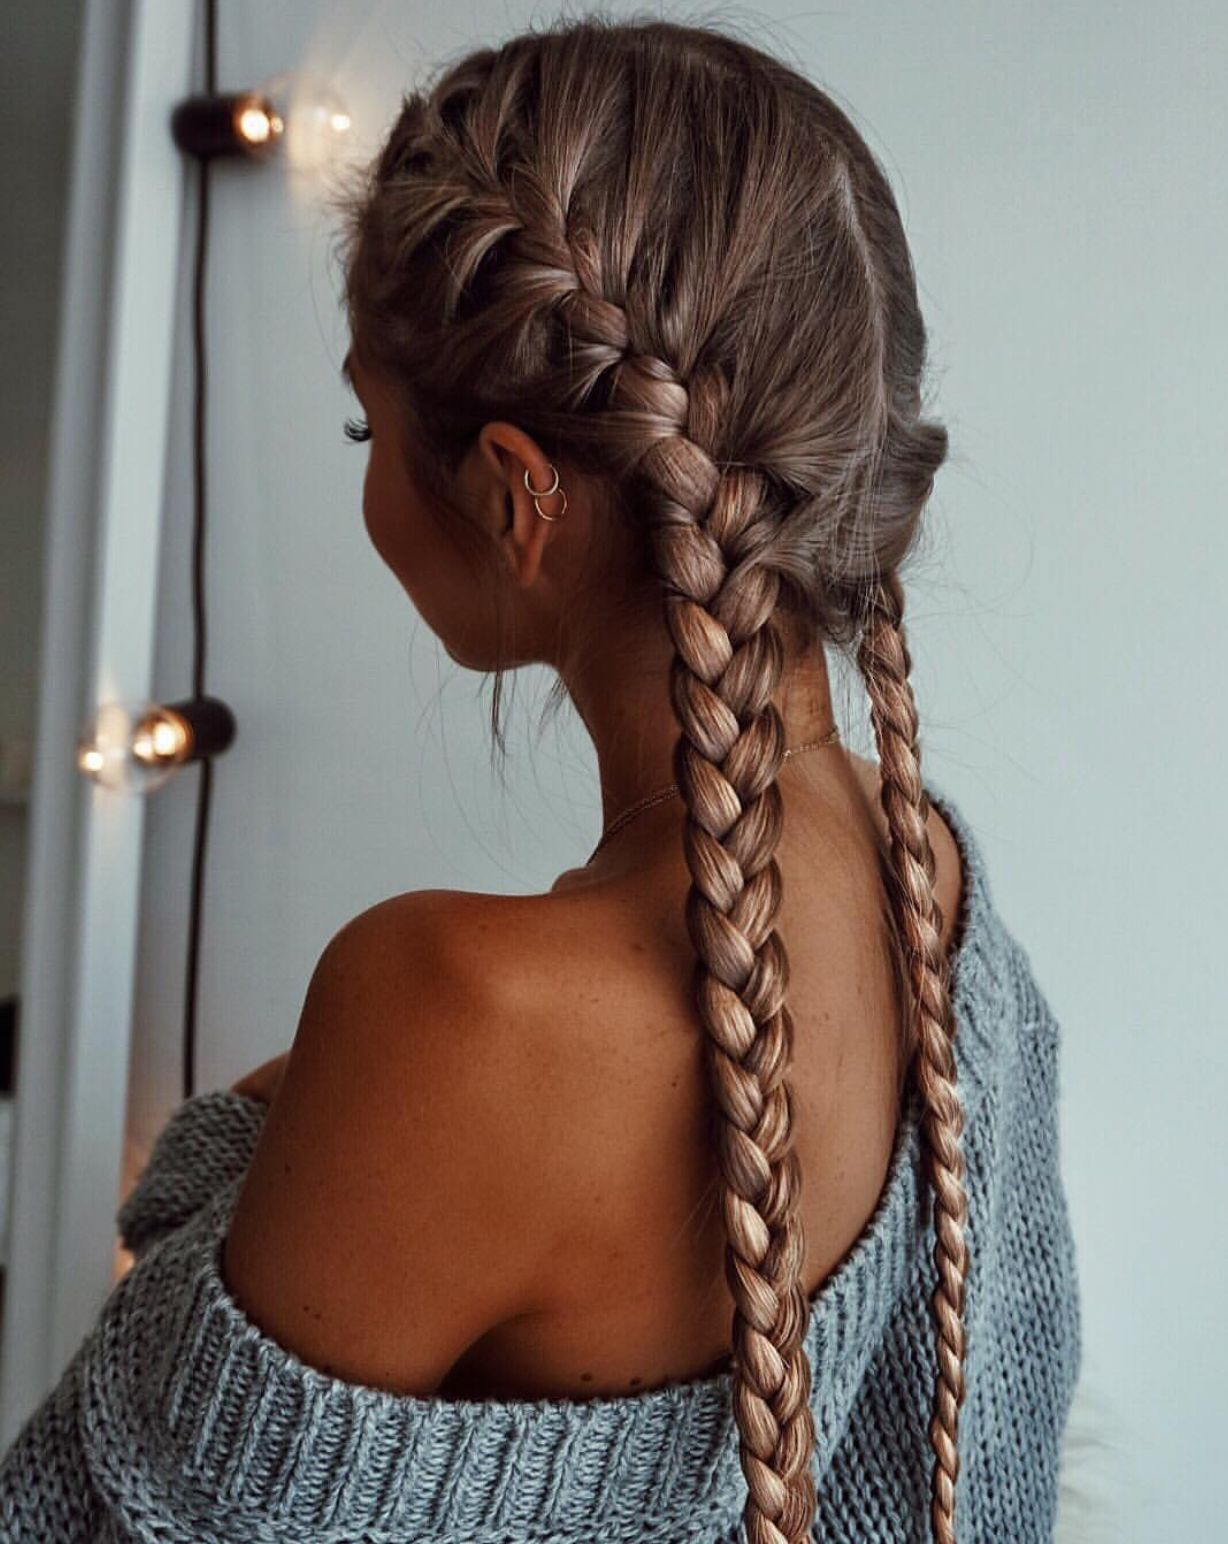 Double dutch braids the perfect hairstyle for the gym or school